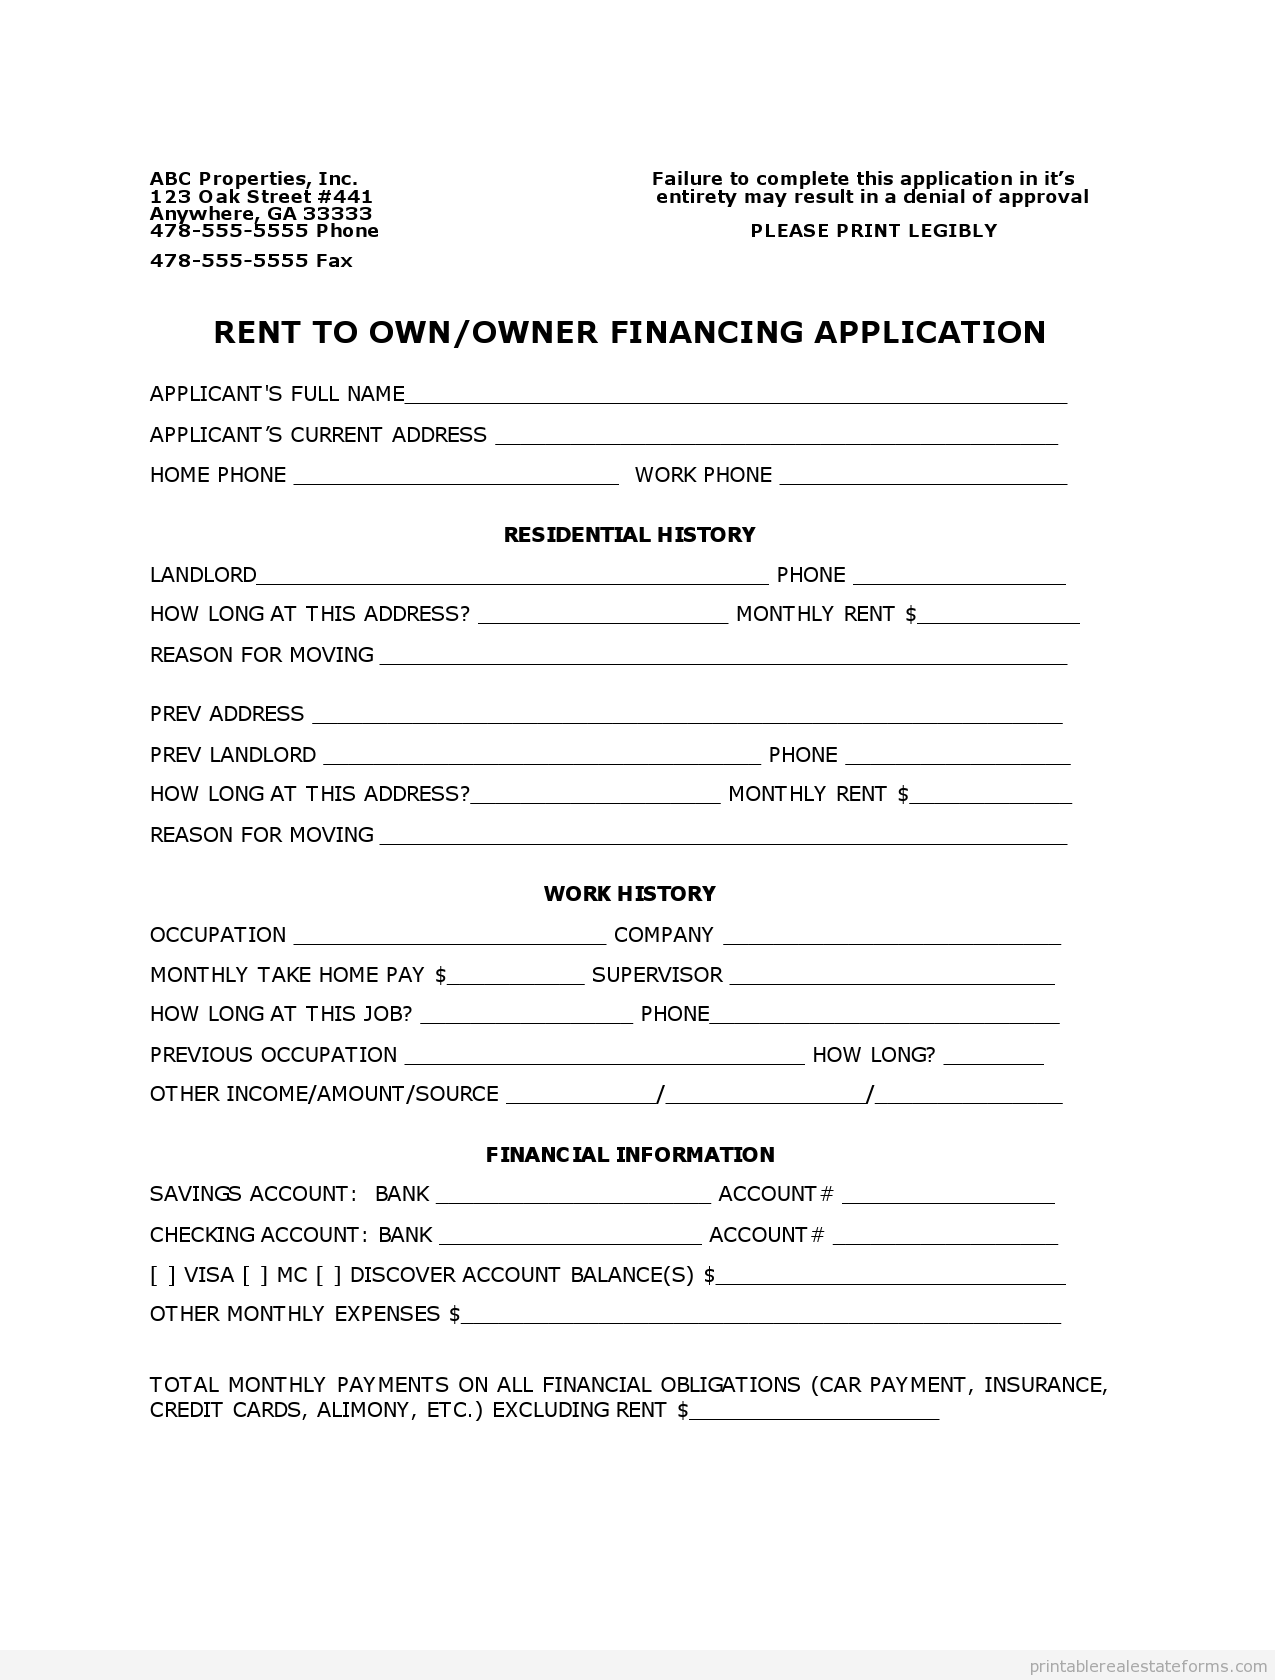 Printable Rental Owner Finance Application Template   Sample